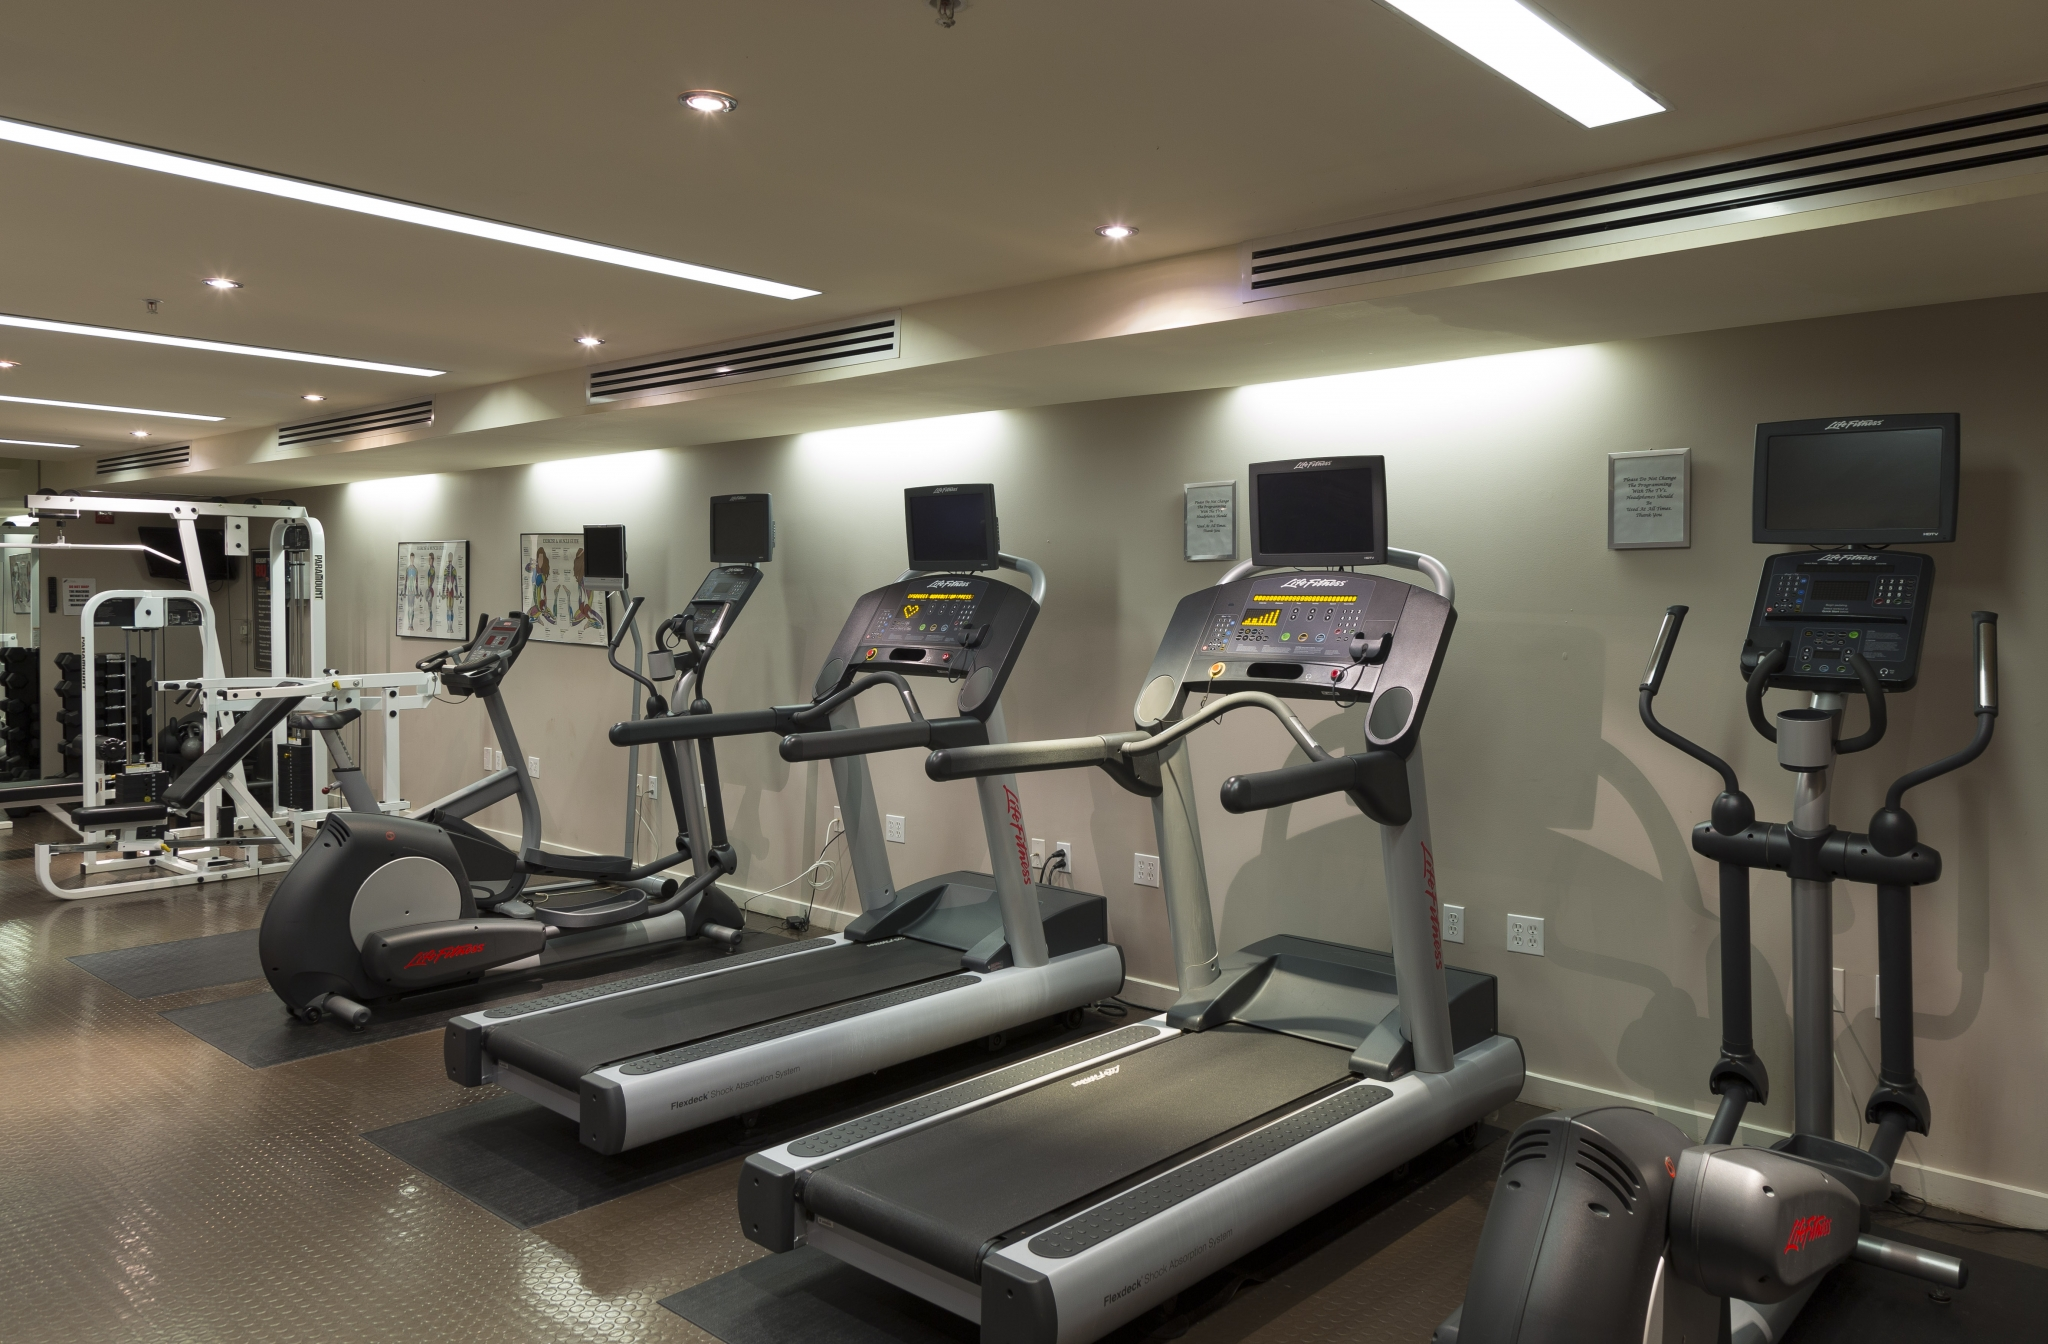 Cutting Edge Fitness Center | Apartments For Rent Washington DC | Park Triangle Apartments Lofts and Flats